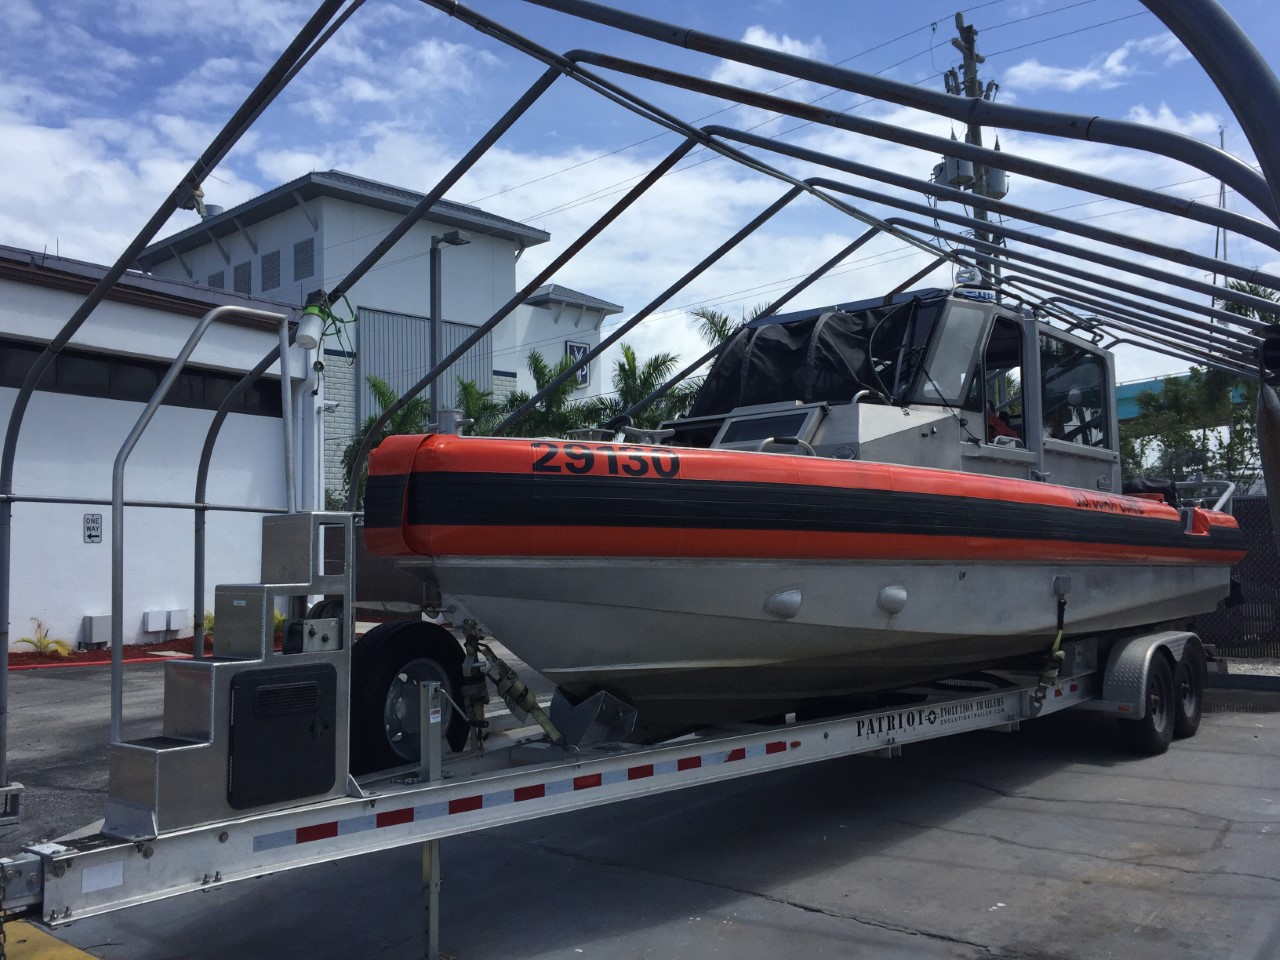 RB-S Boat (Coast Guard Station Fort Myers)